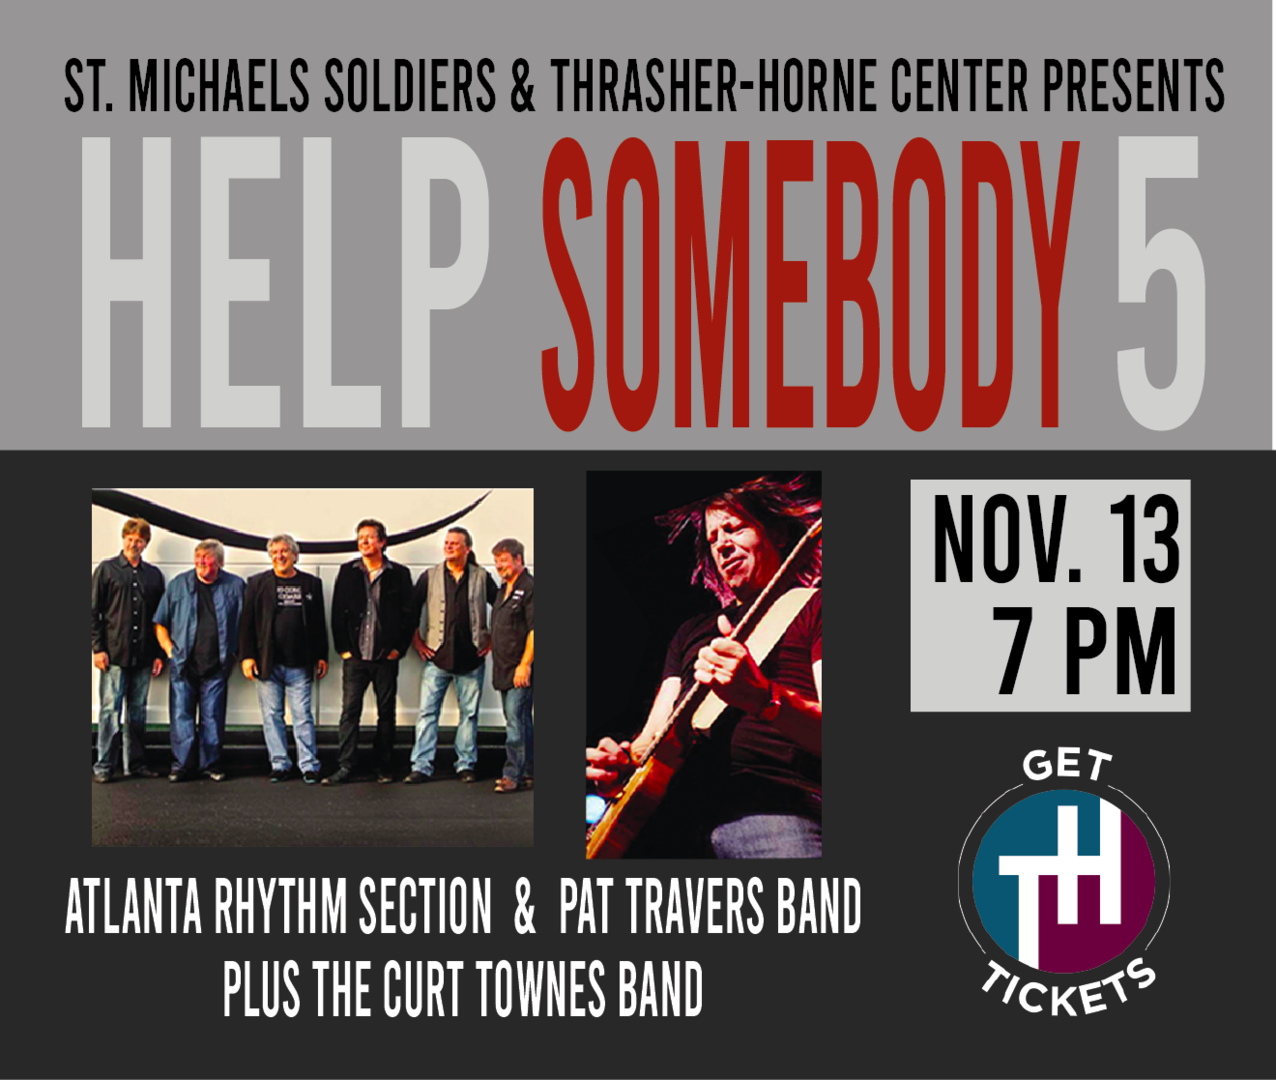 Help Somebody 5: Atlanta Rhythm Section Pat Travers and the Curt Towne Band